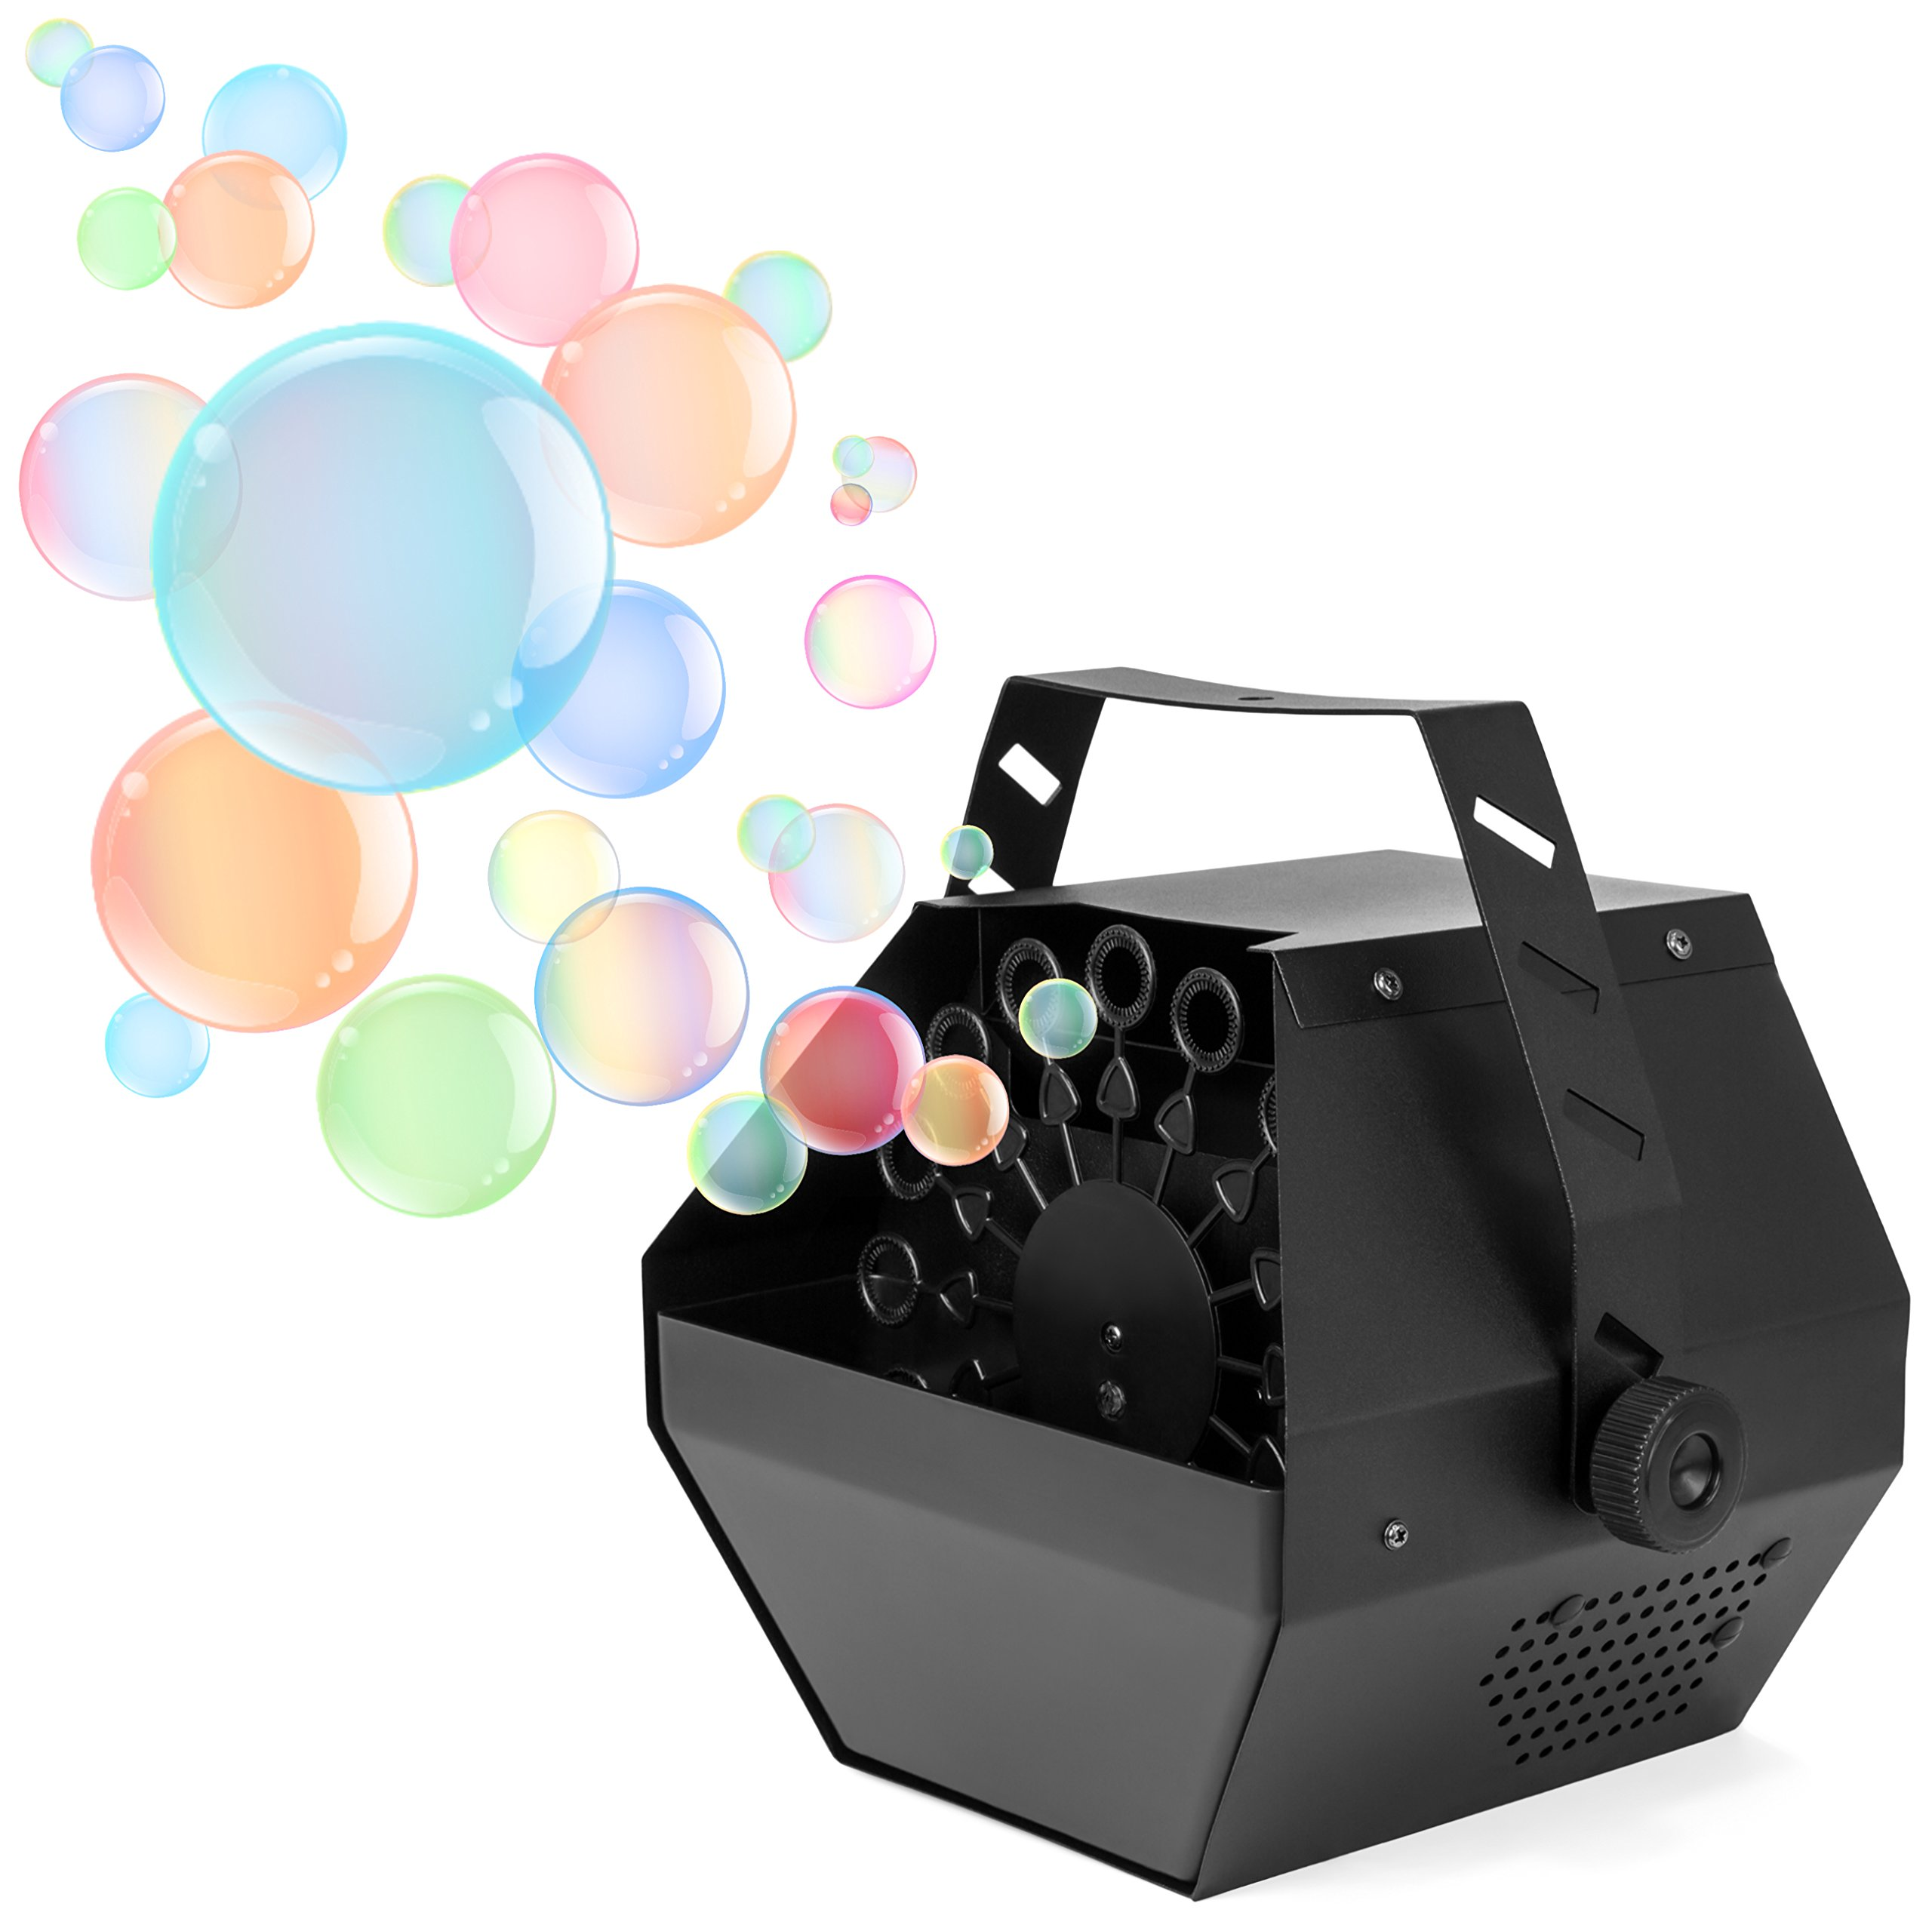 Best Choice Products Professional Portable Metal Automatic Bubble Machine with High Output, Black